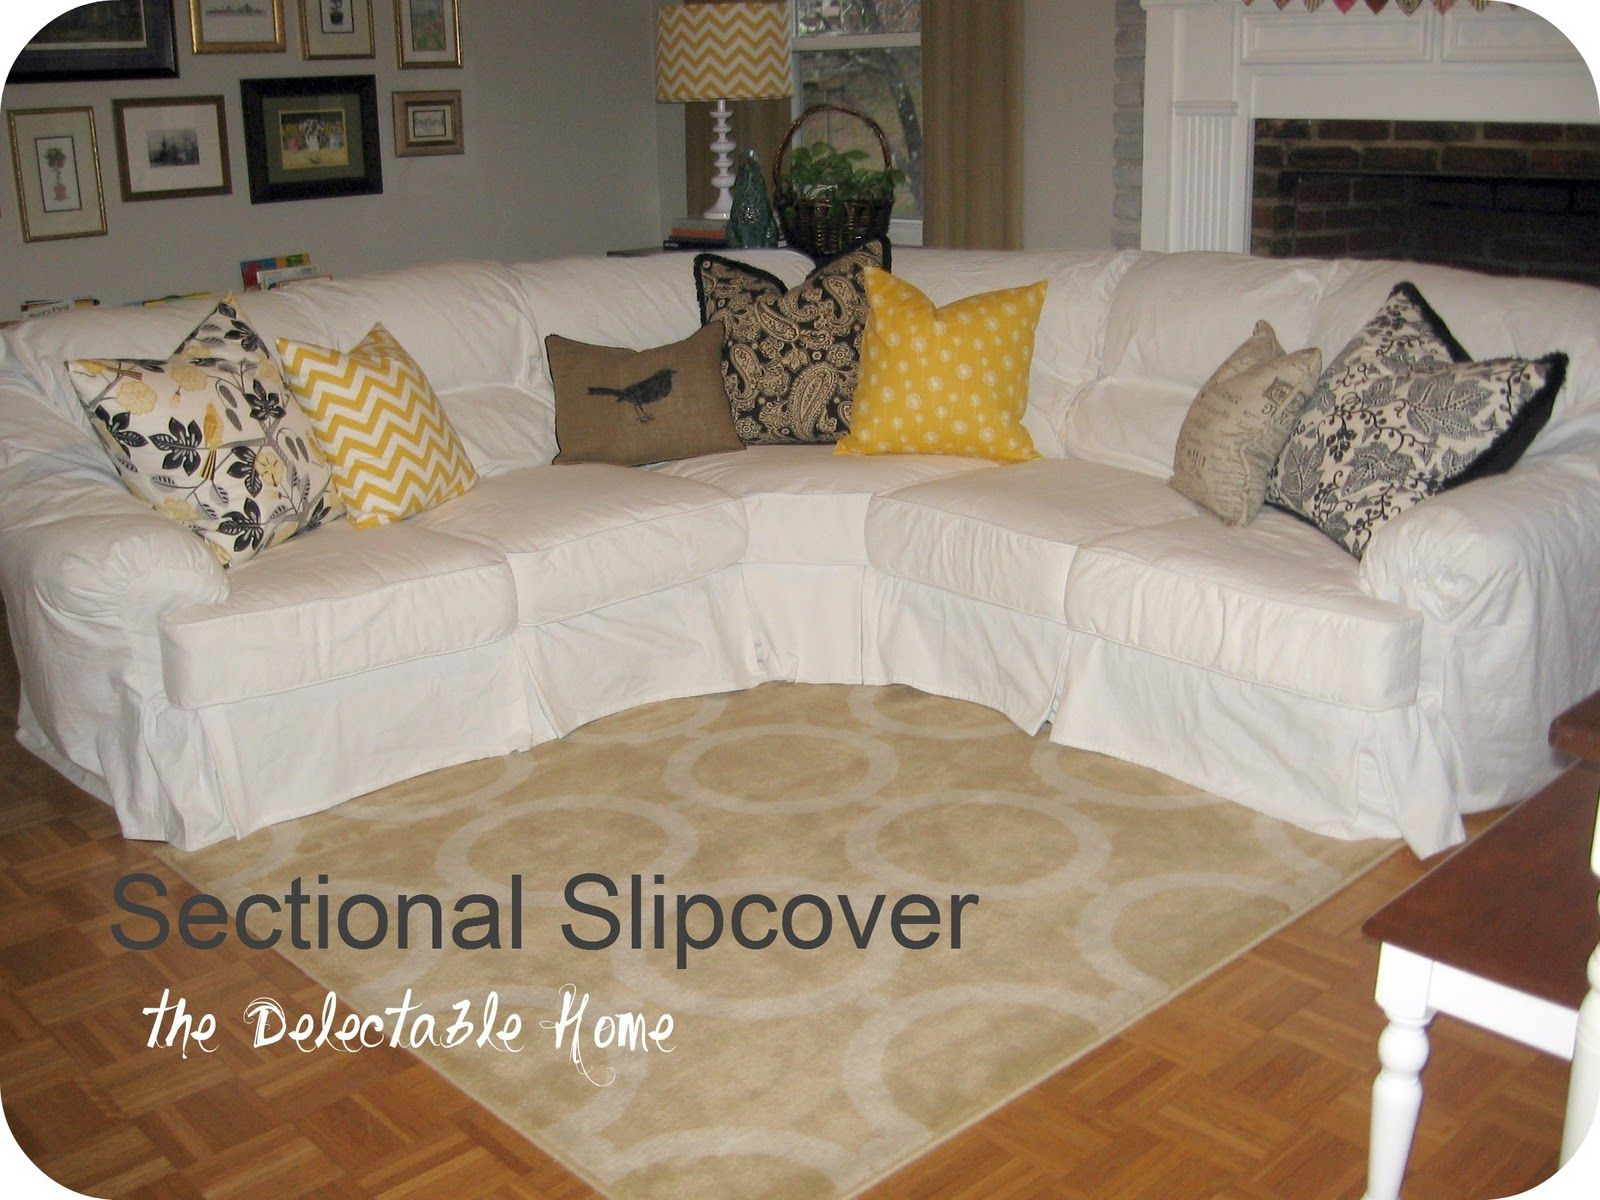 The Delectable Home: impossible sectional slipcover | Sew What?! in ...